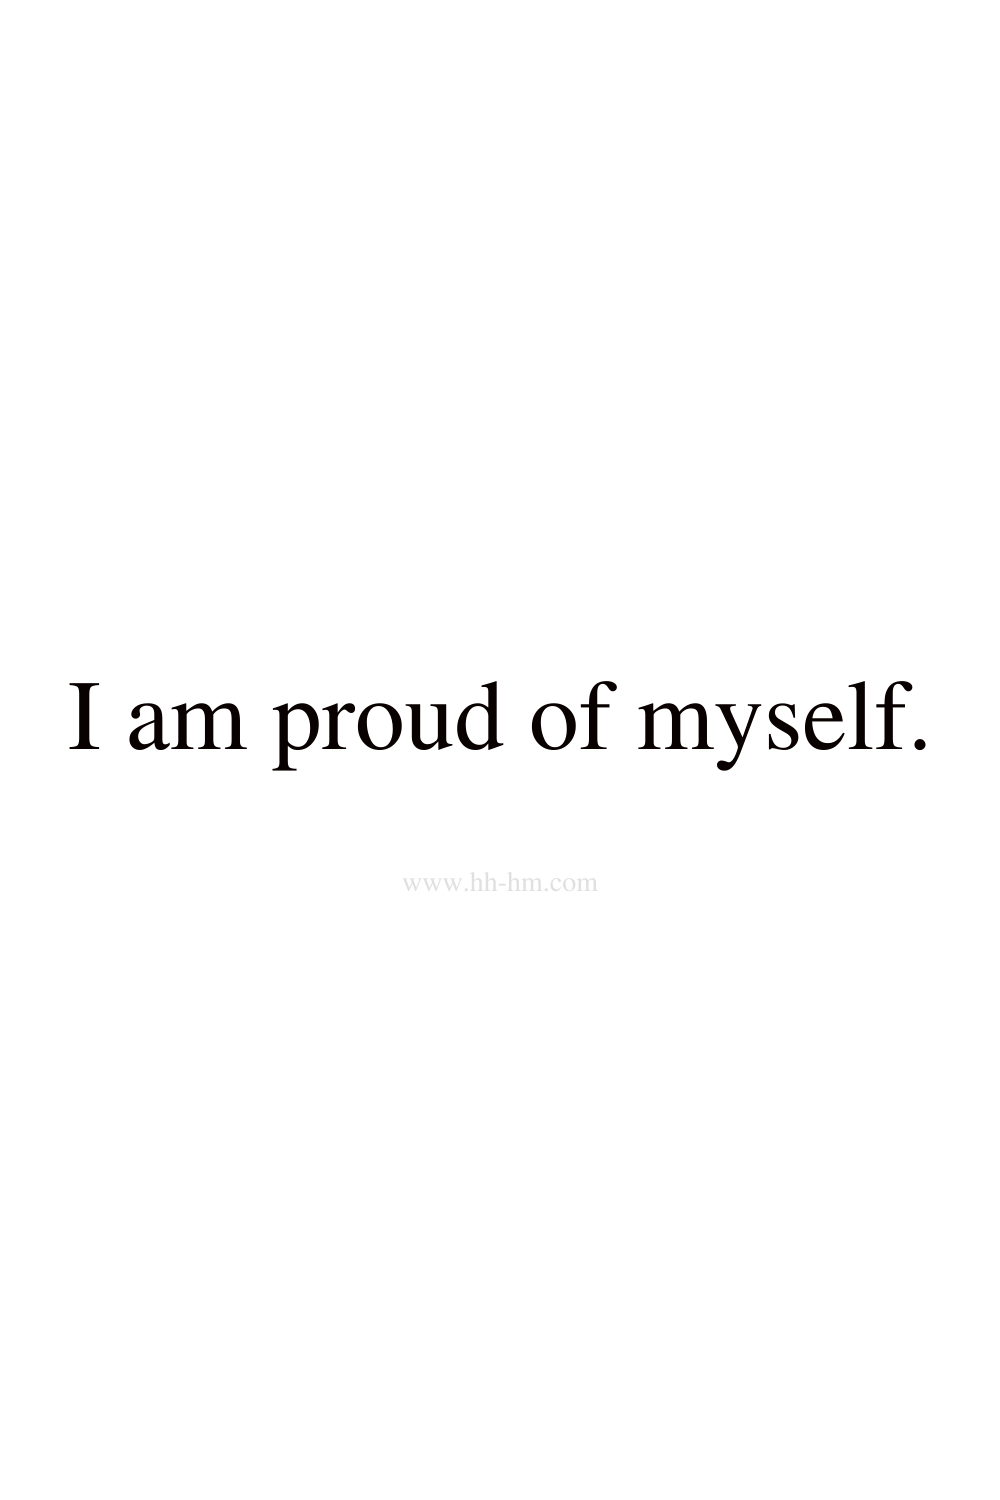 I am proud of myself - self love and self confidence morning affirmations